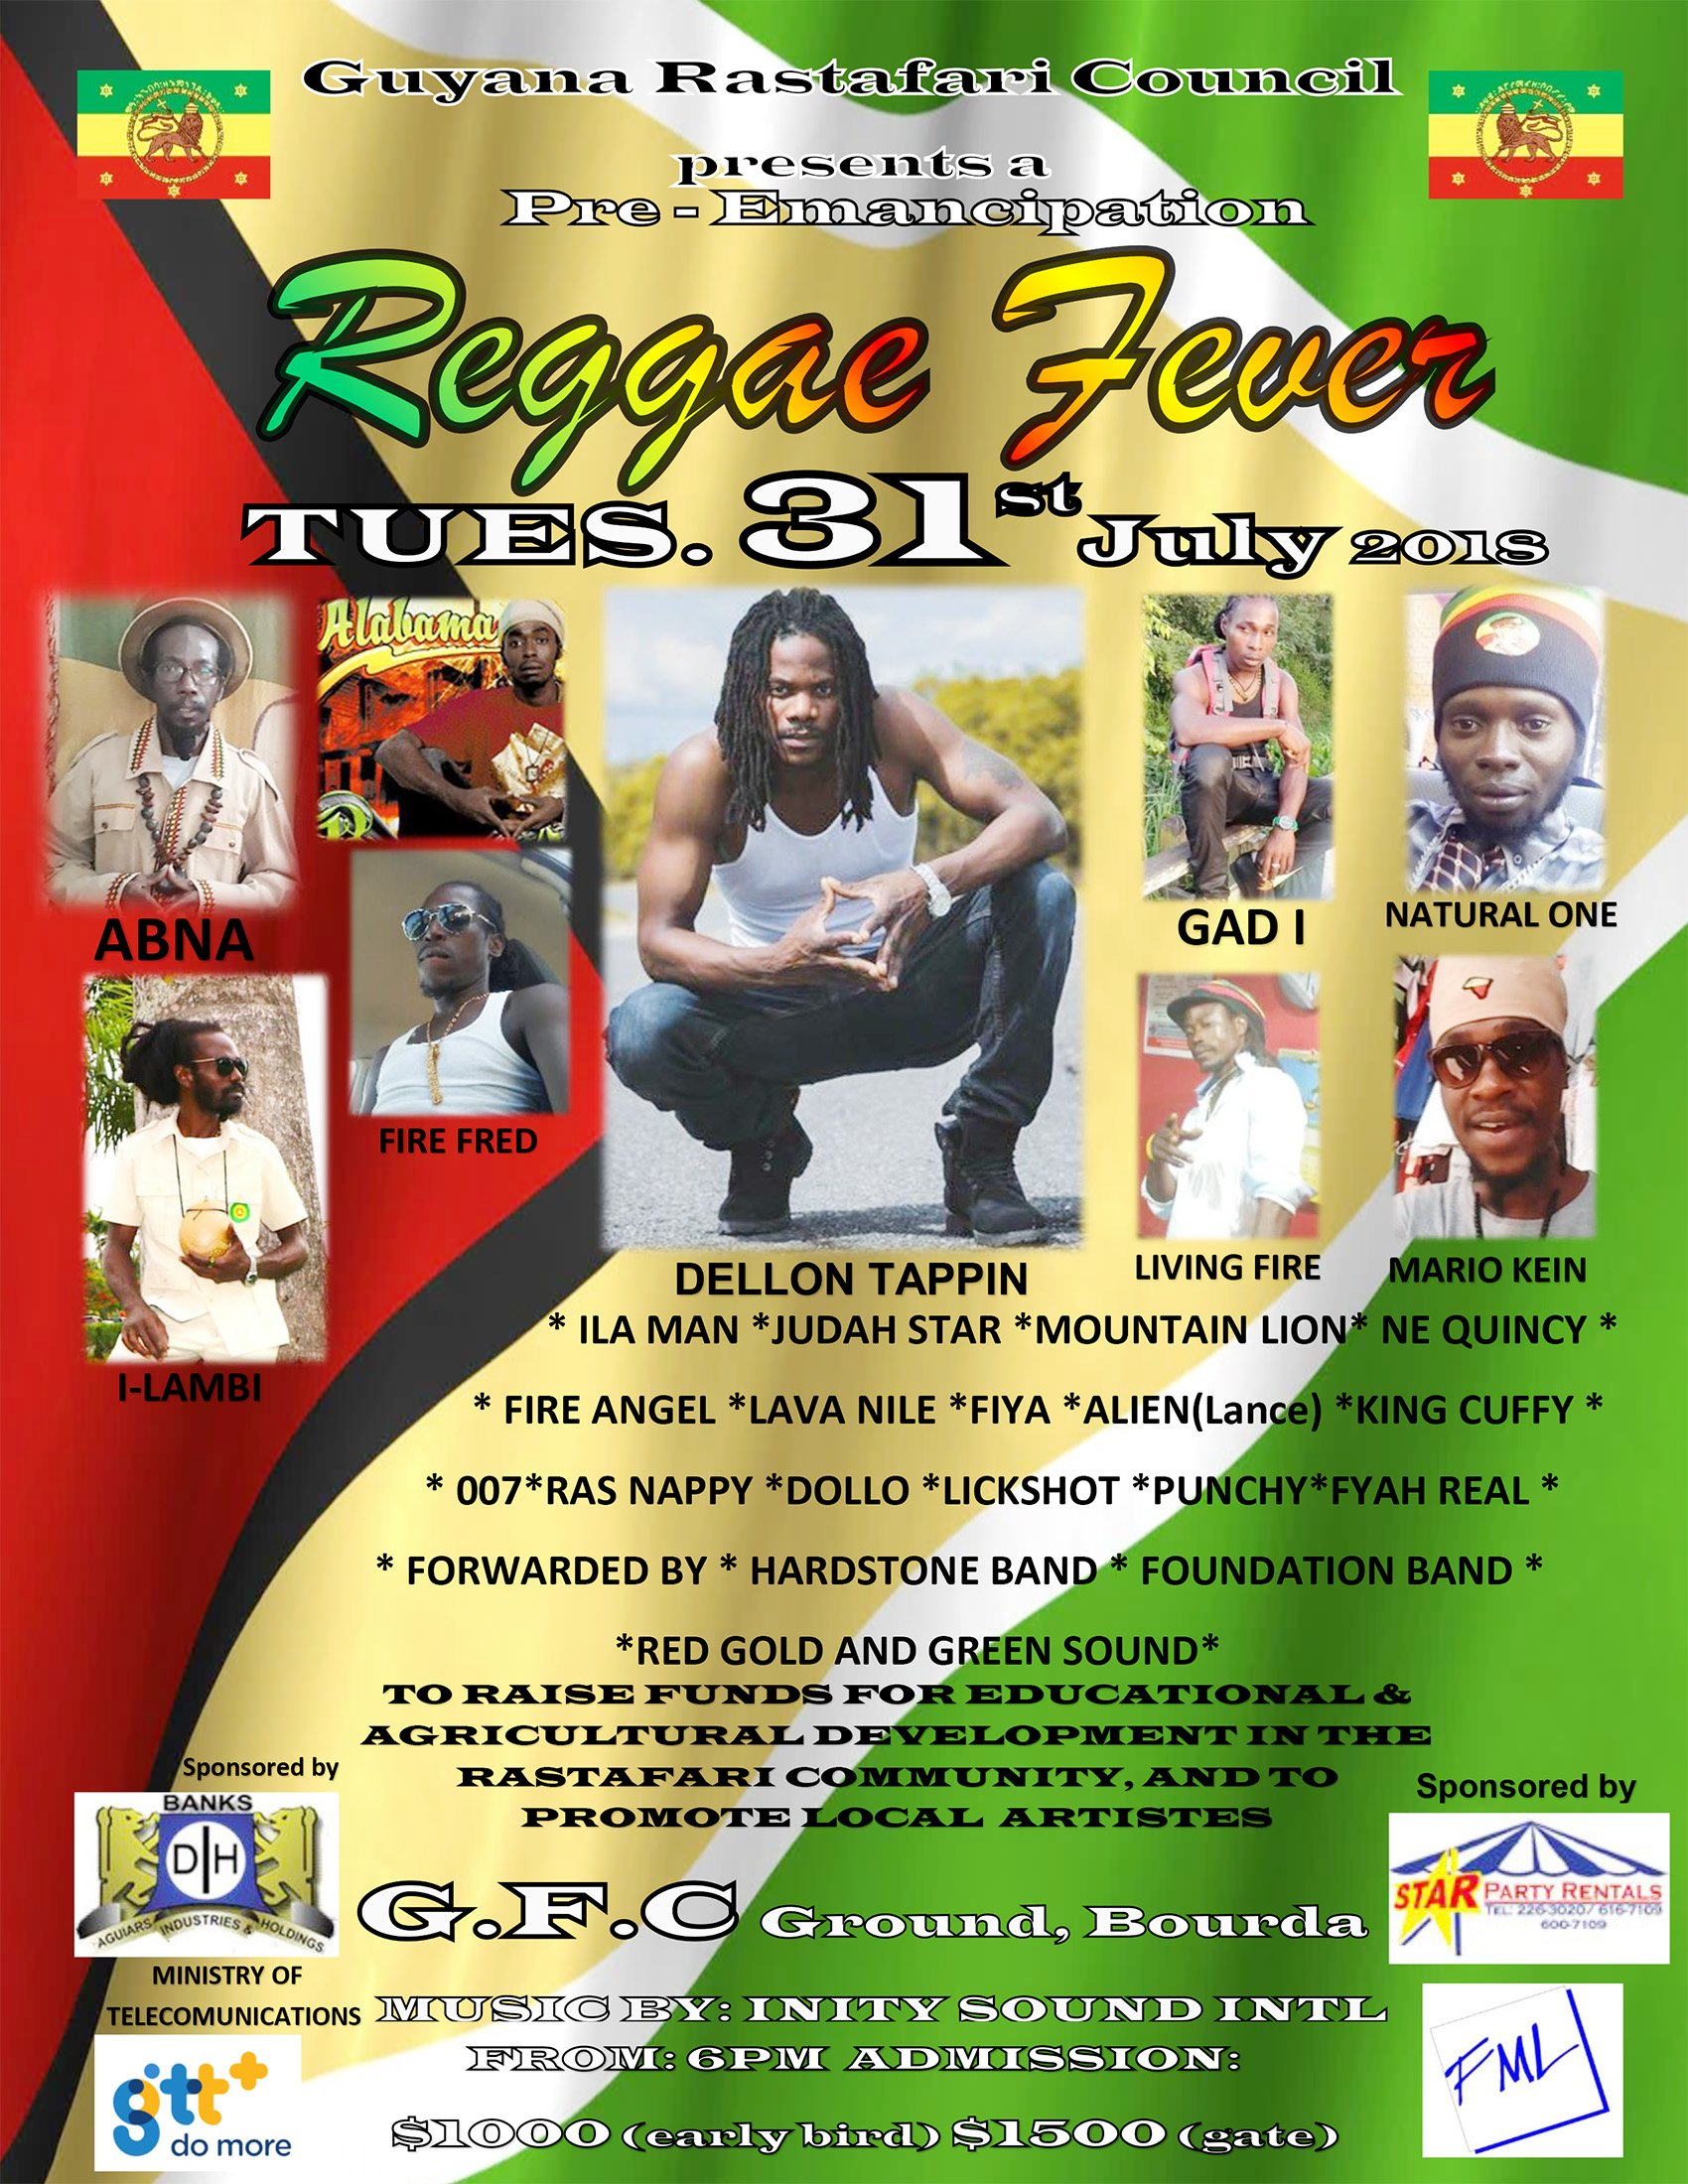 Reggae fever takes over GFC on July 31 - Stabroek News